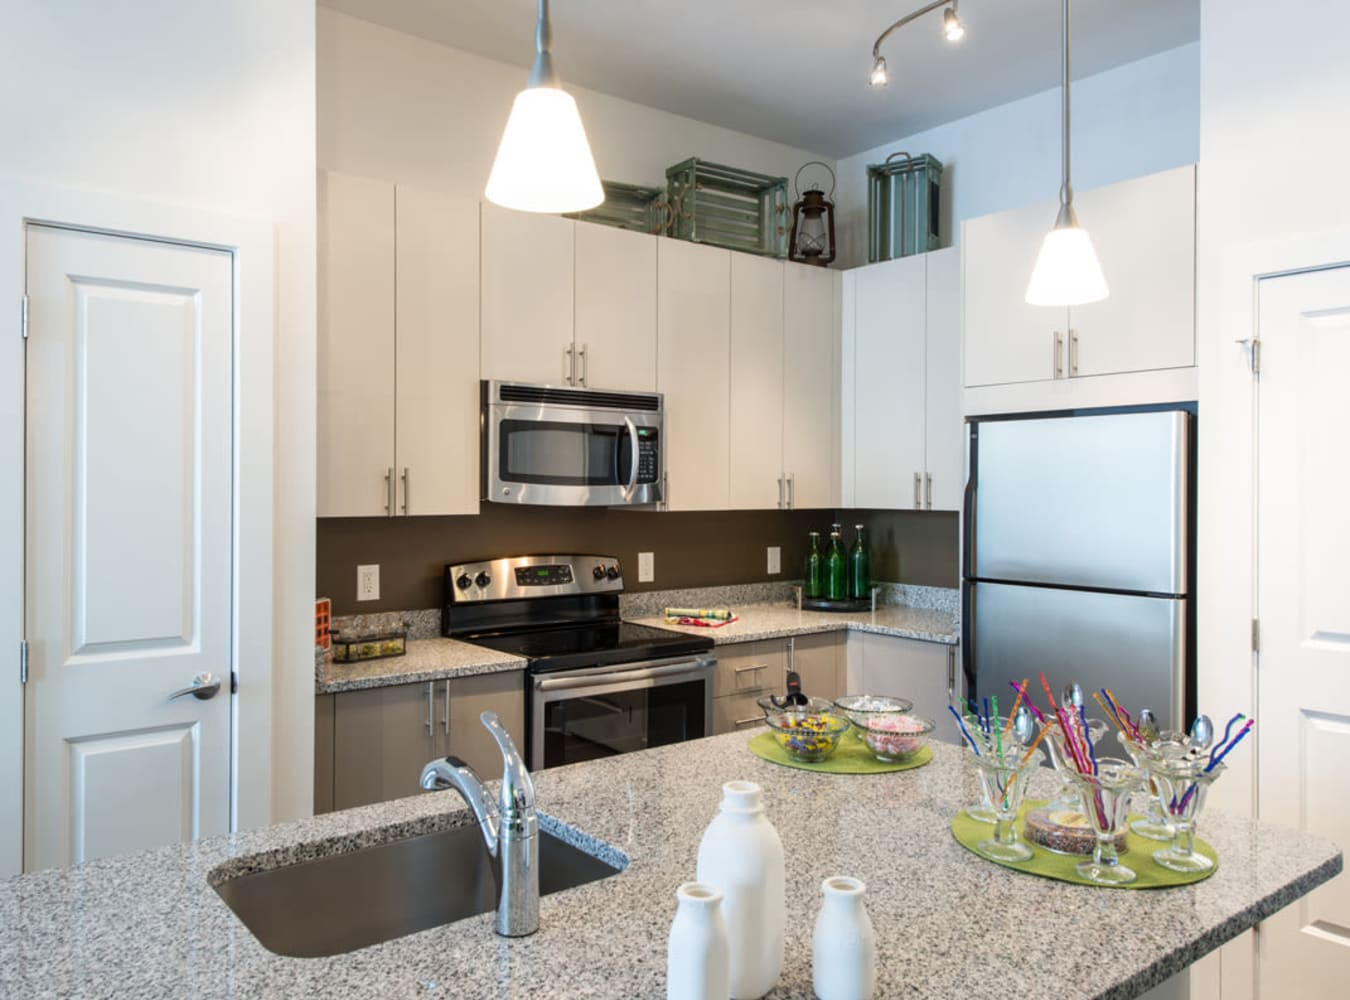 Kitchen with Modern Appliances and Island at  in Silver Spring, MD